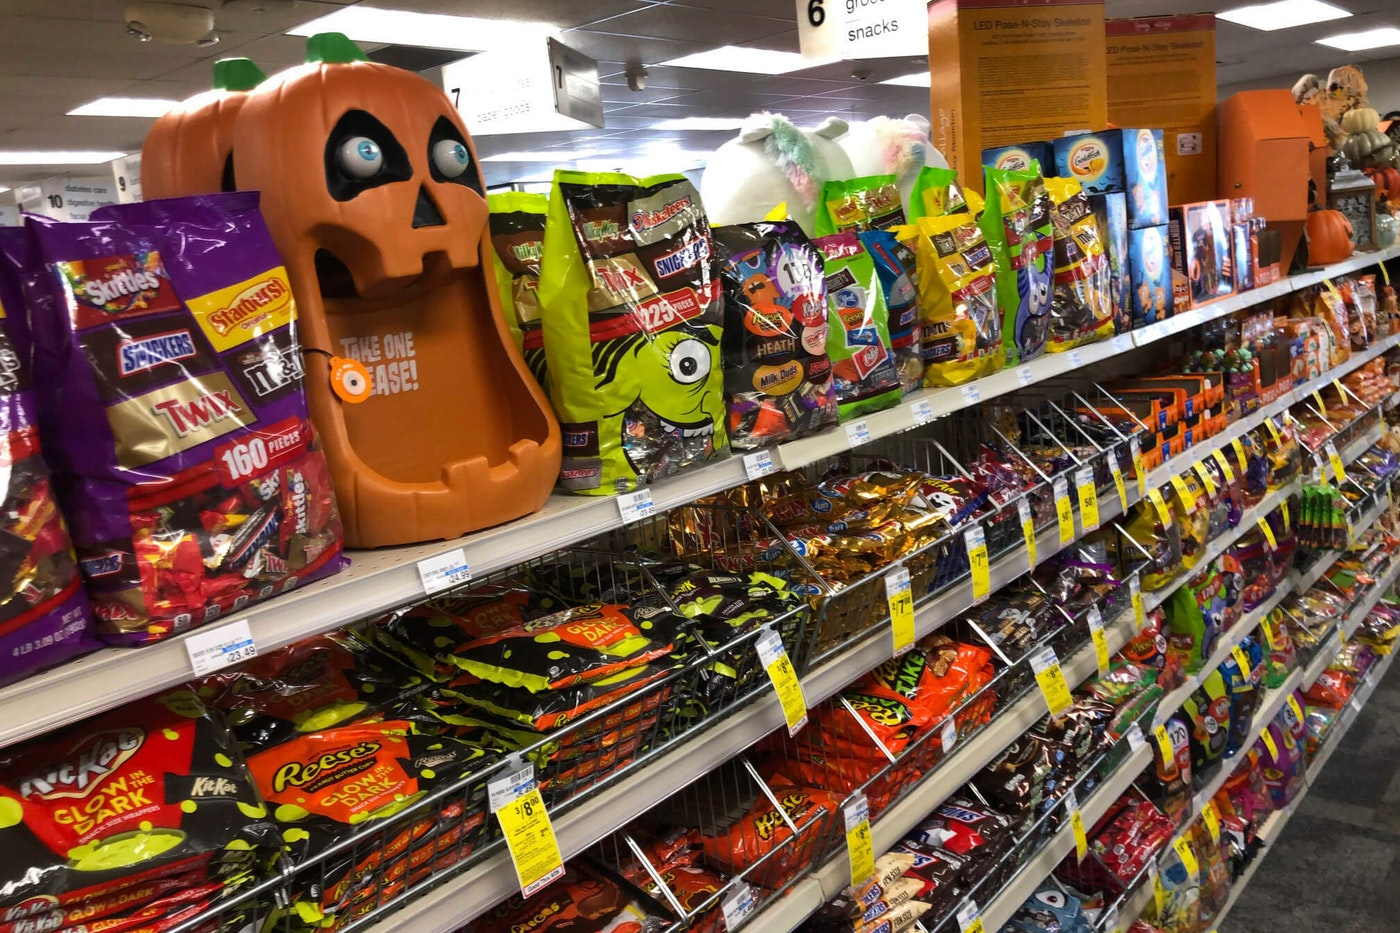 Halloween candy and decorations are displayed at a store, Wednesday, Sept. 23, 2020, in Freeport, Maine. In this year of the pandemic, with trick-or-treating still an uncertainty, US Halloween candy sales were up 13% over last year in the month ending Sept. 6, according to data from market research firm IRI and the National Confectioners Association. (AP Photo/Robert F. Bukaty)